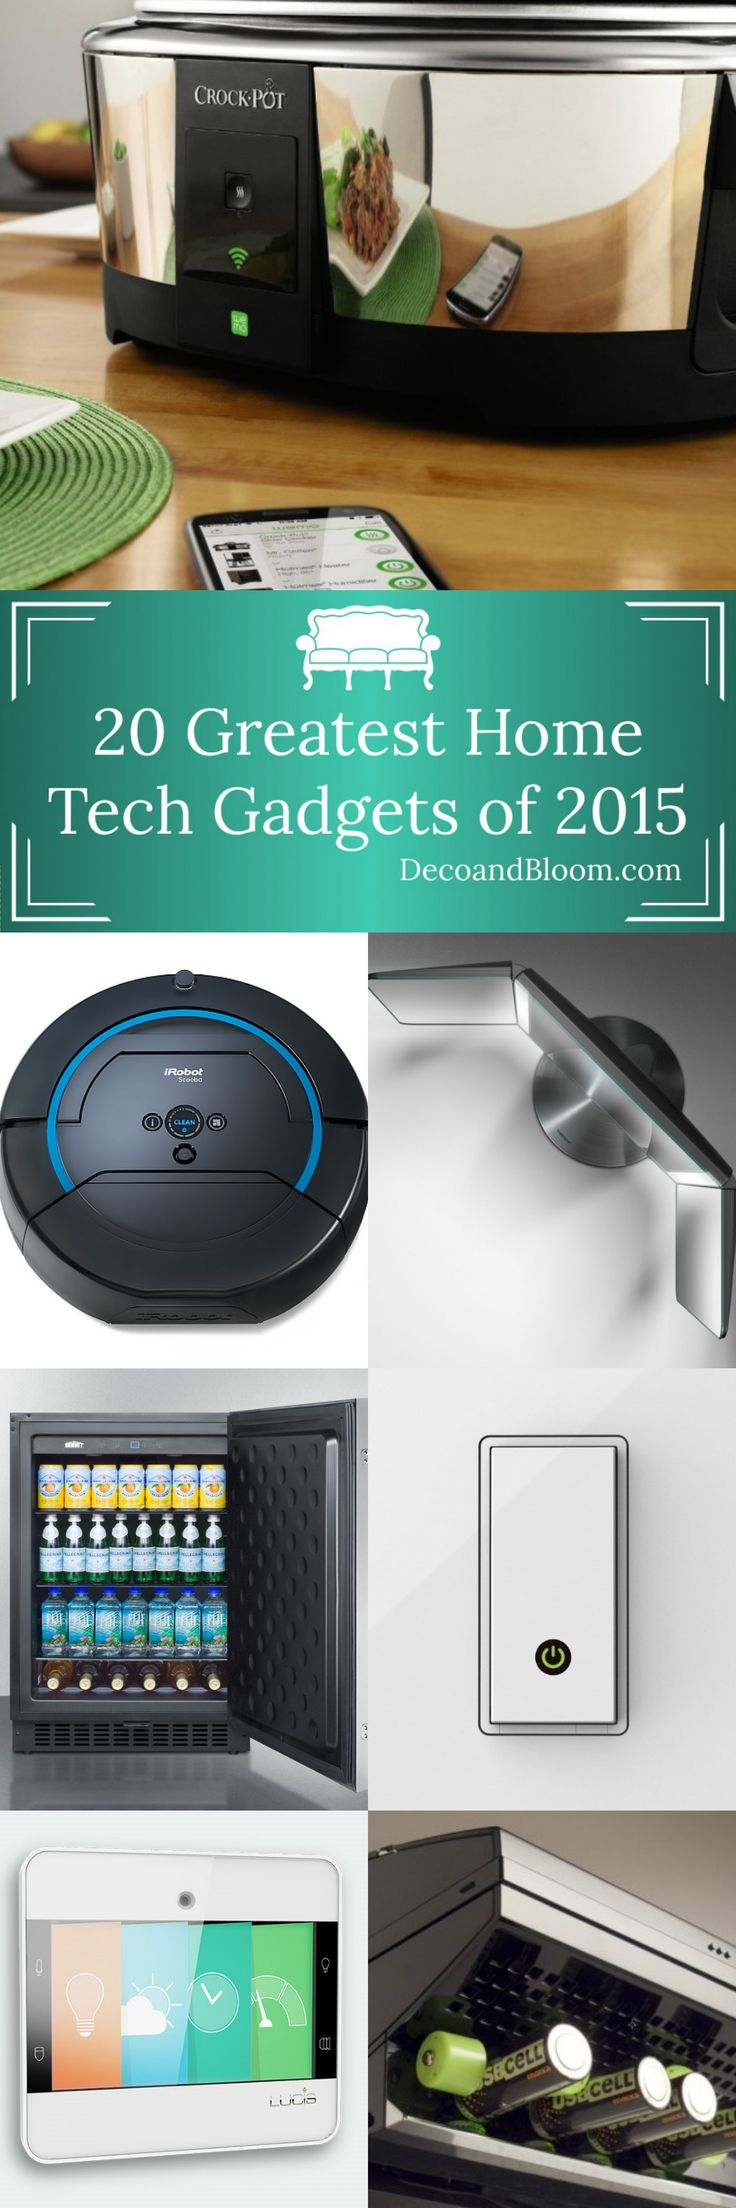 20 Greatest Home Tech Gadgets of 2015 - From the Home Decor Discovery Community at www.DecoandBloom.com